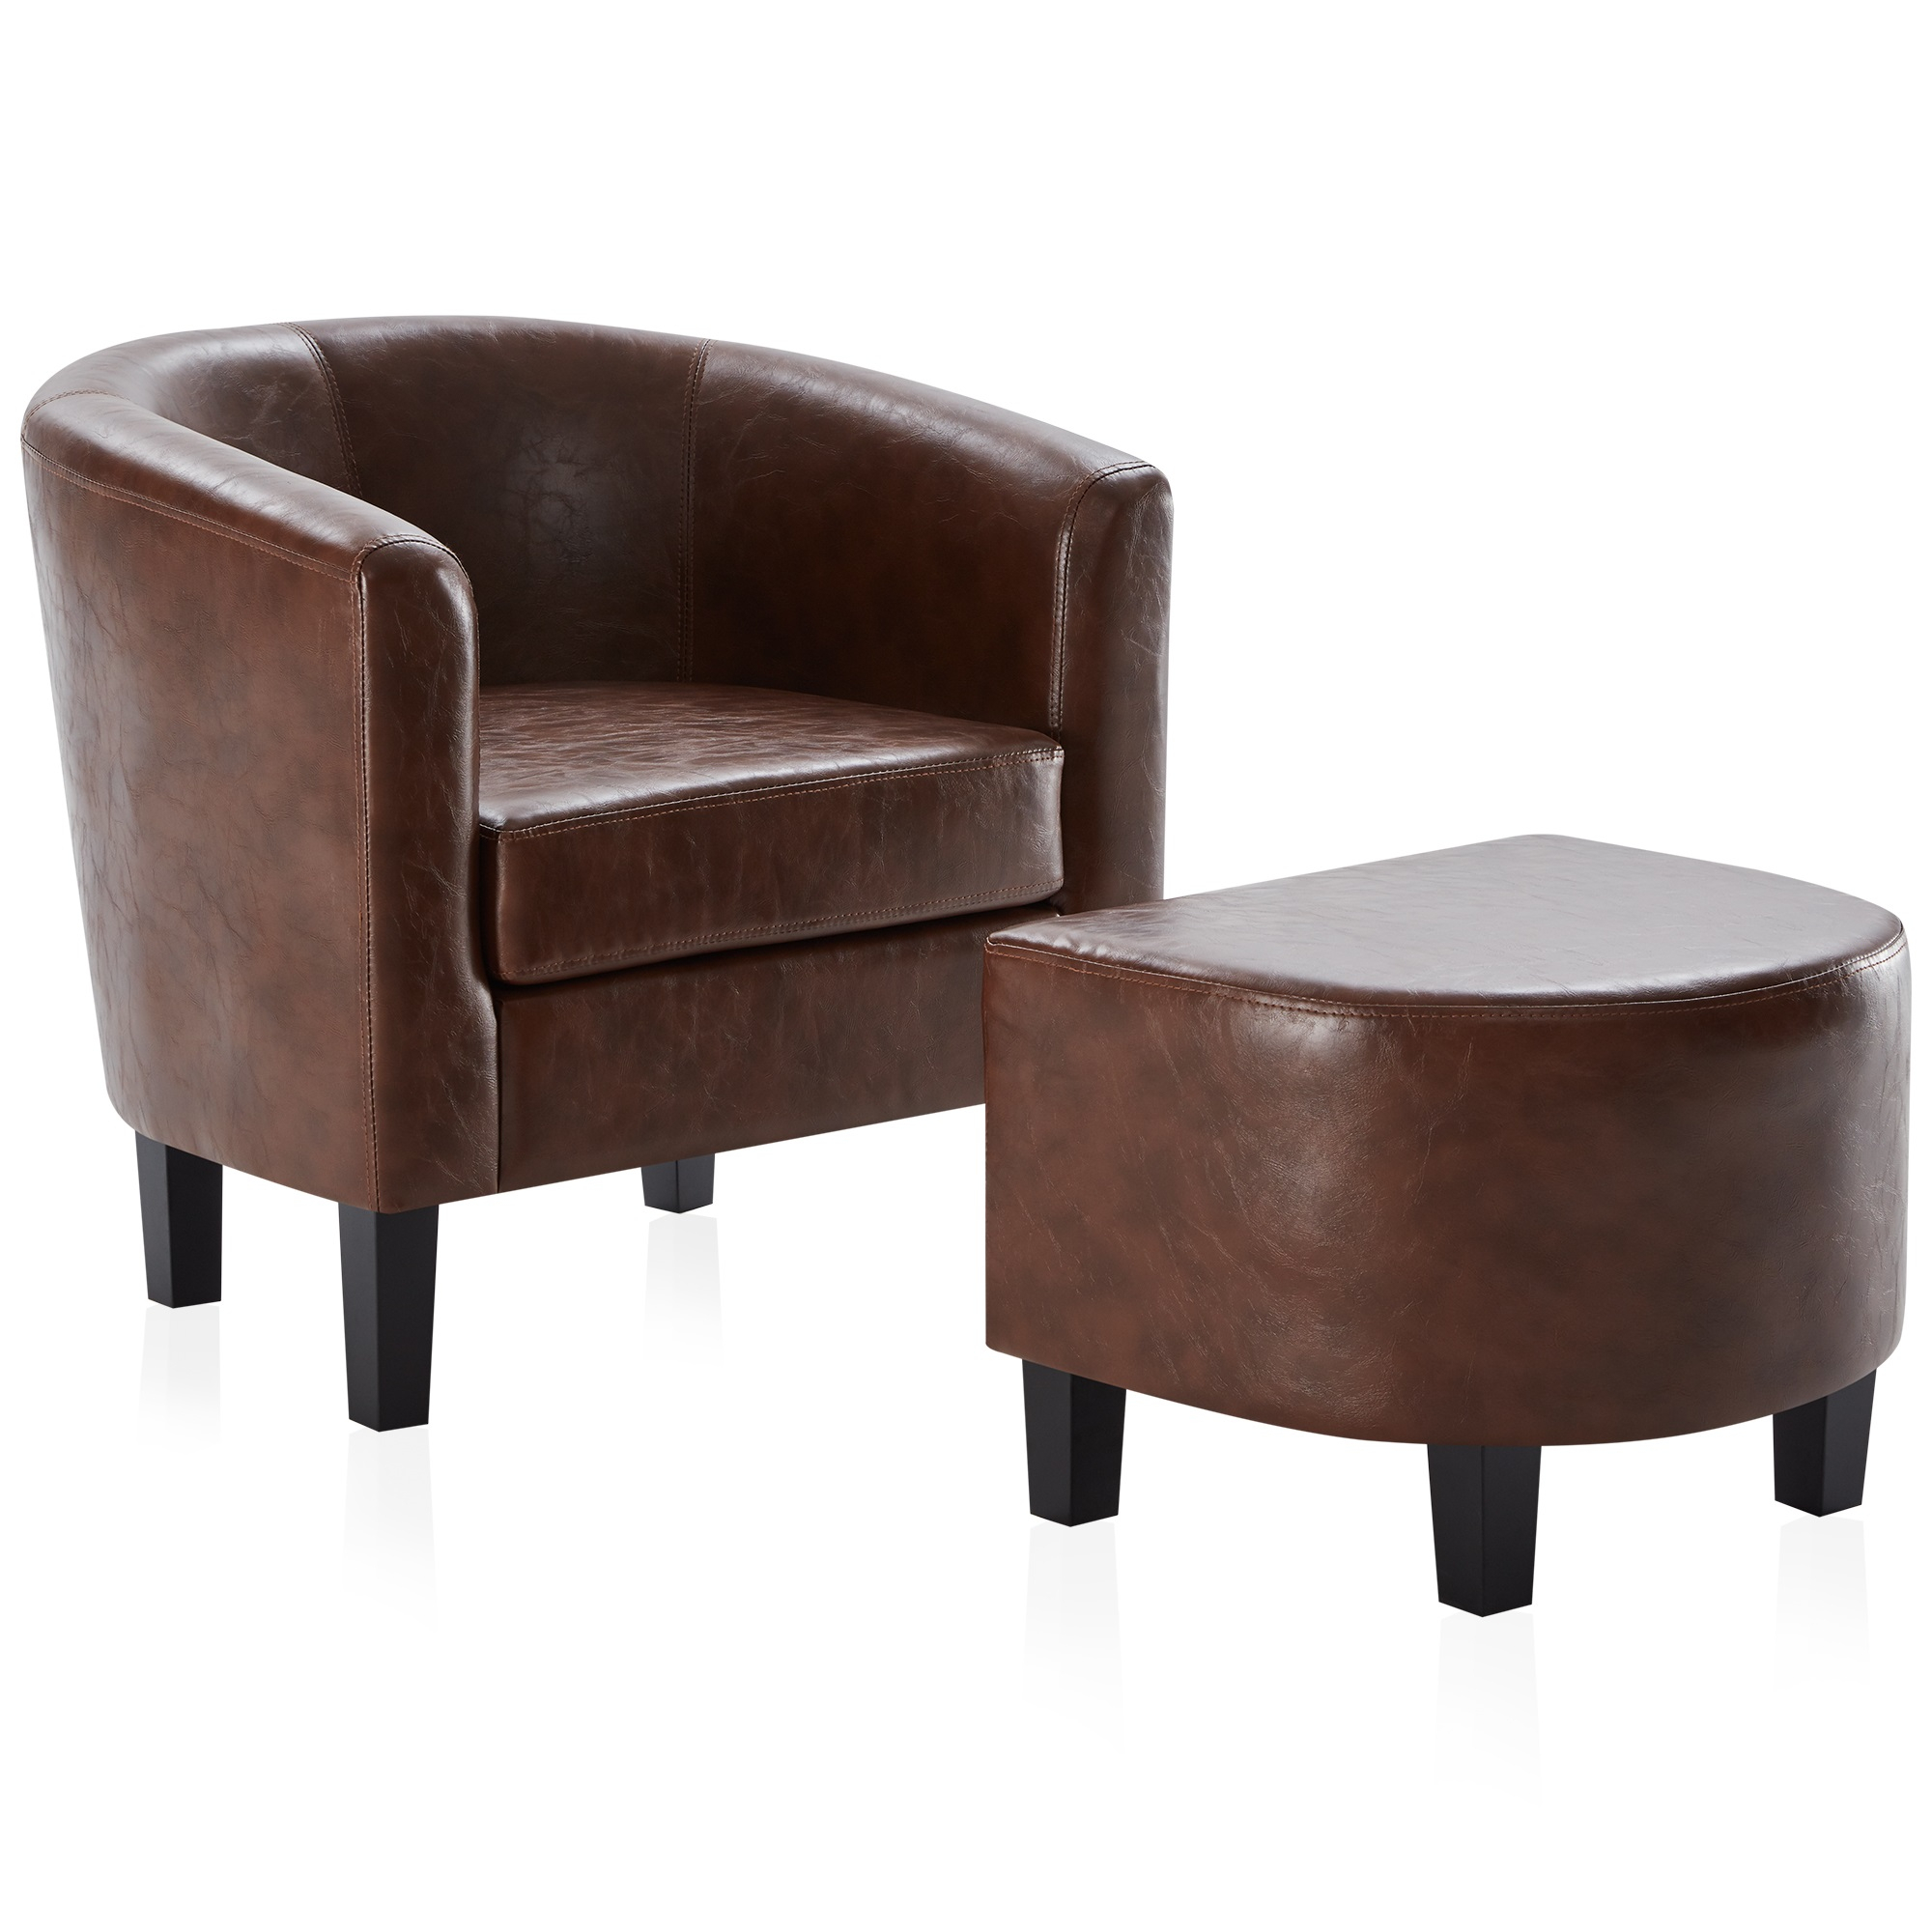 Belleze Modern Barrel Accent Chair With Ottoman Linen/ Faux Leather Round Arms Footrest Set – Walmart In Faux Leather Barrel Chair And Ottoman Sets (View 5 of 15)